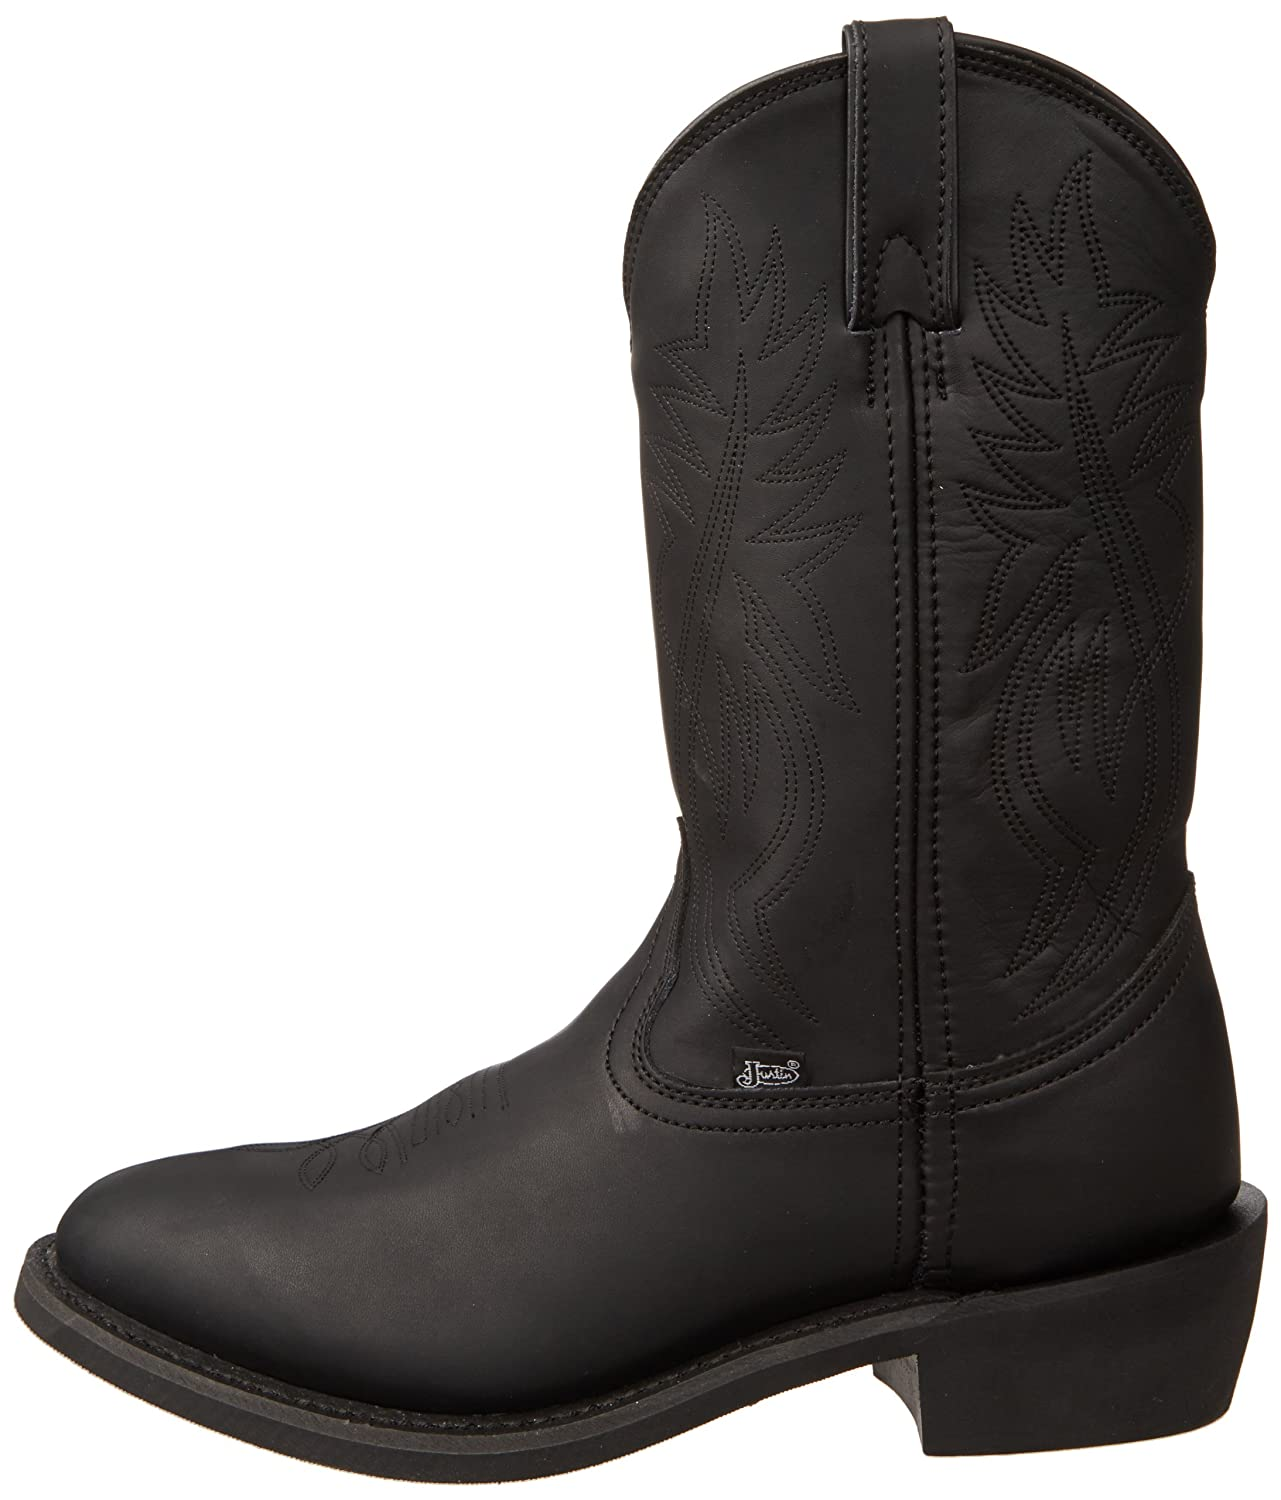 7a88f7dbad7 Justin Boots Men's Farm and Ranch Boot